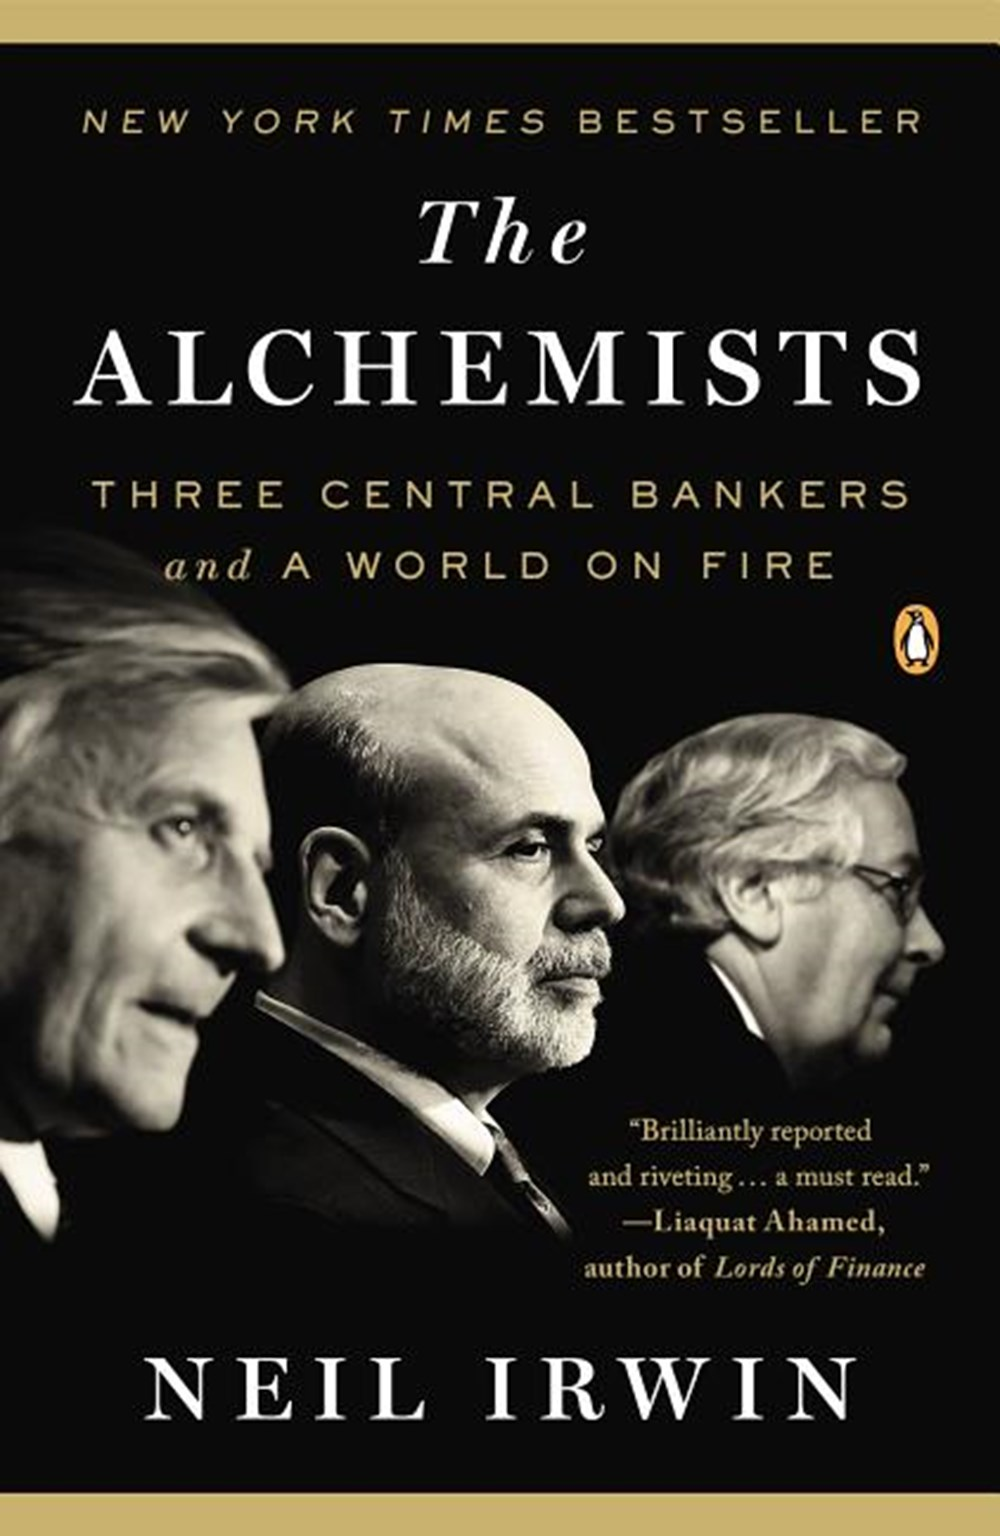 Alchemists Three Central Bankers and a World on Fire